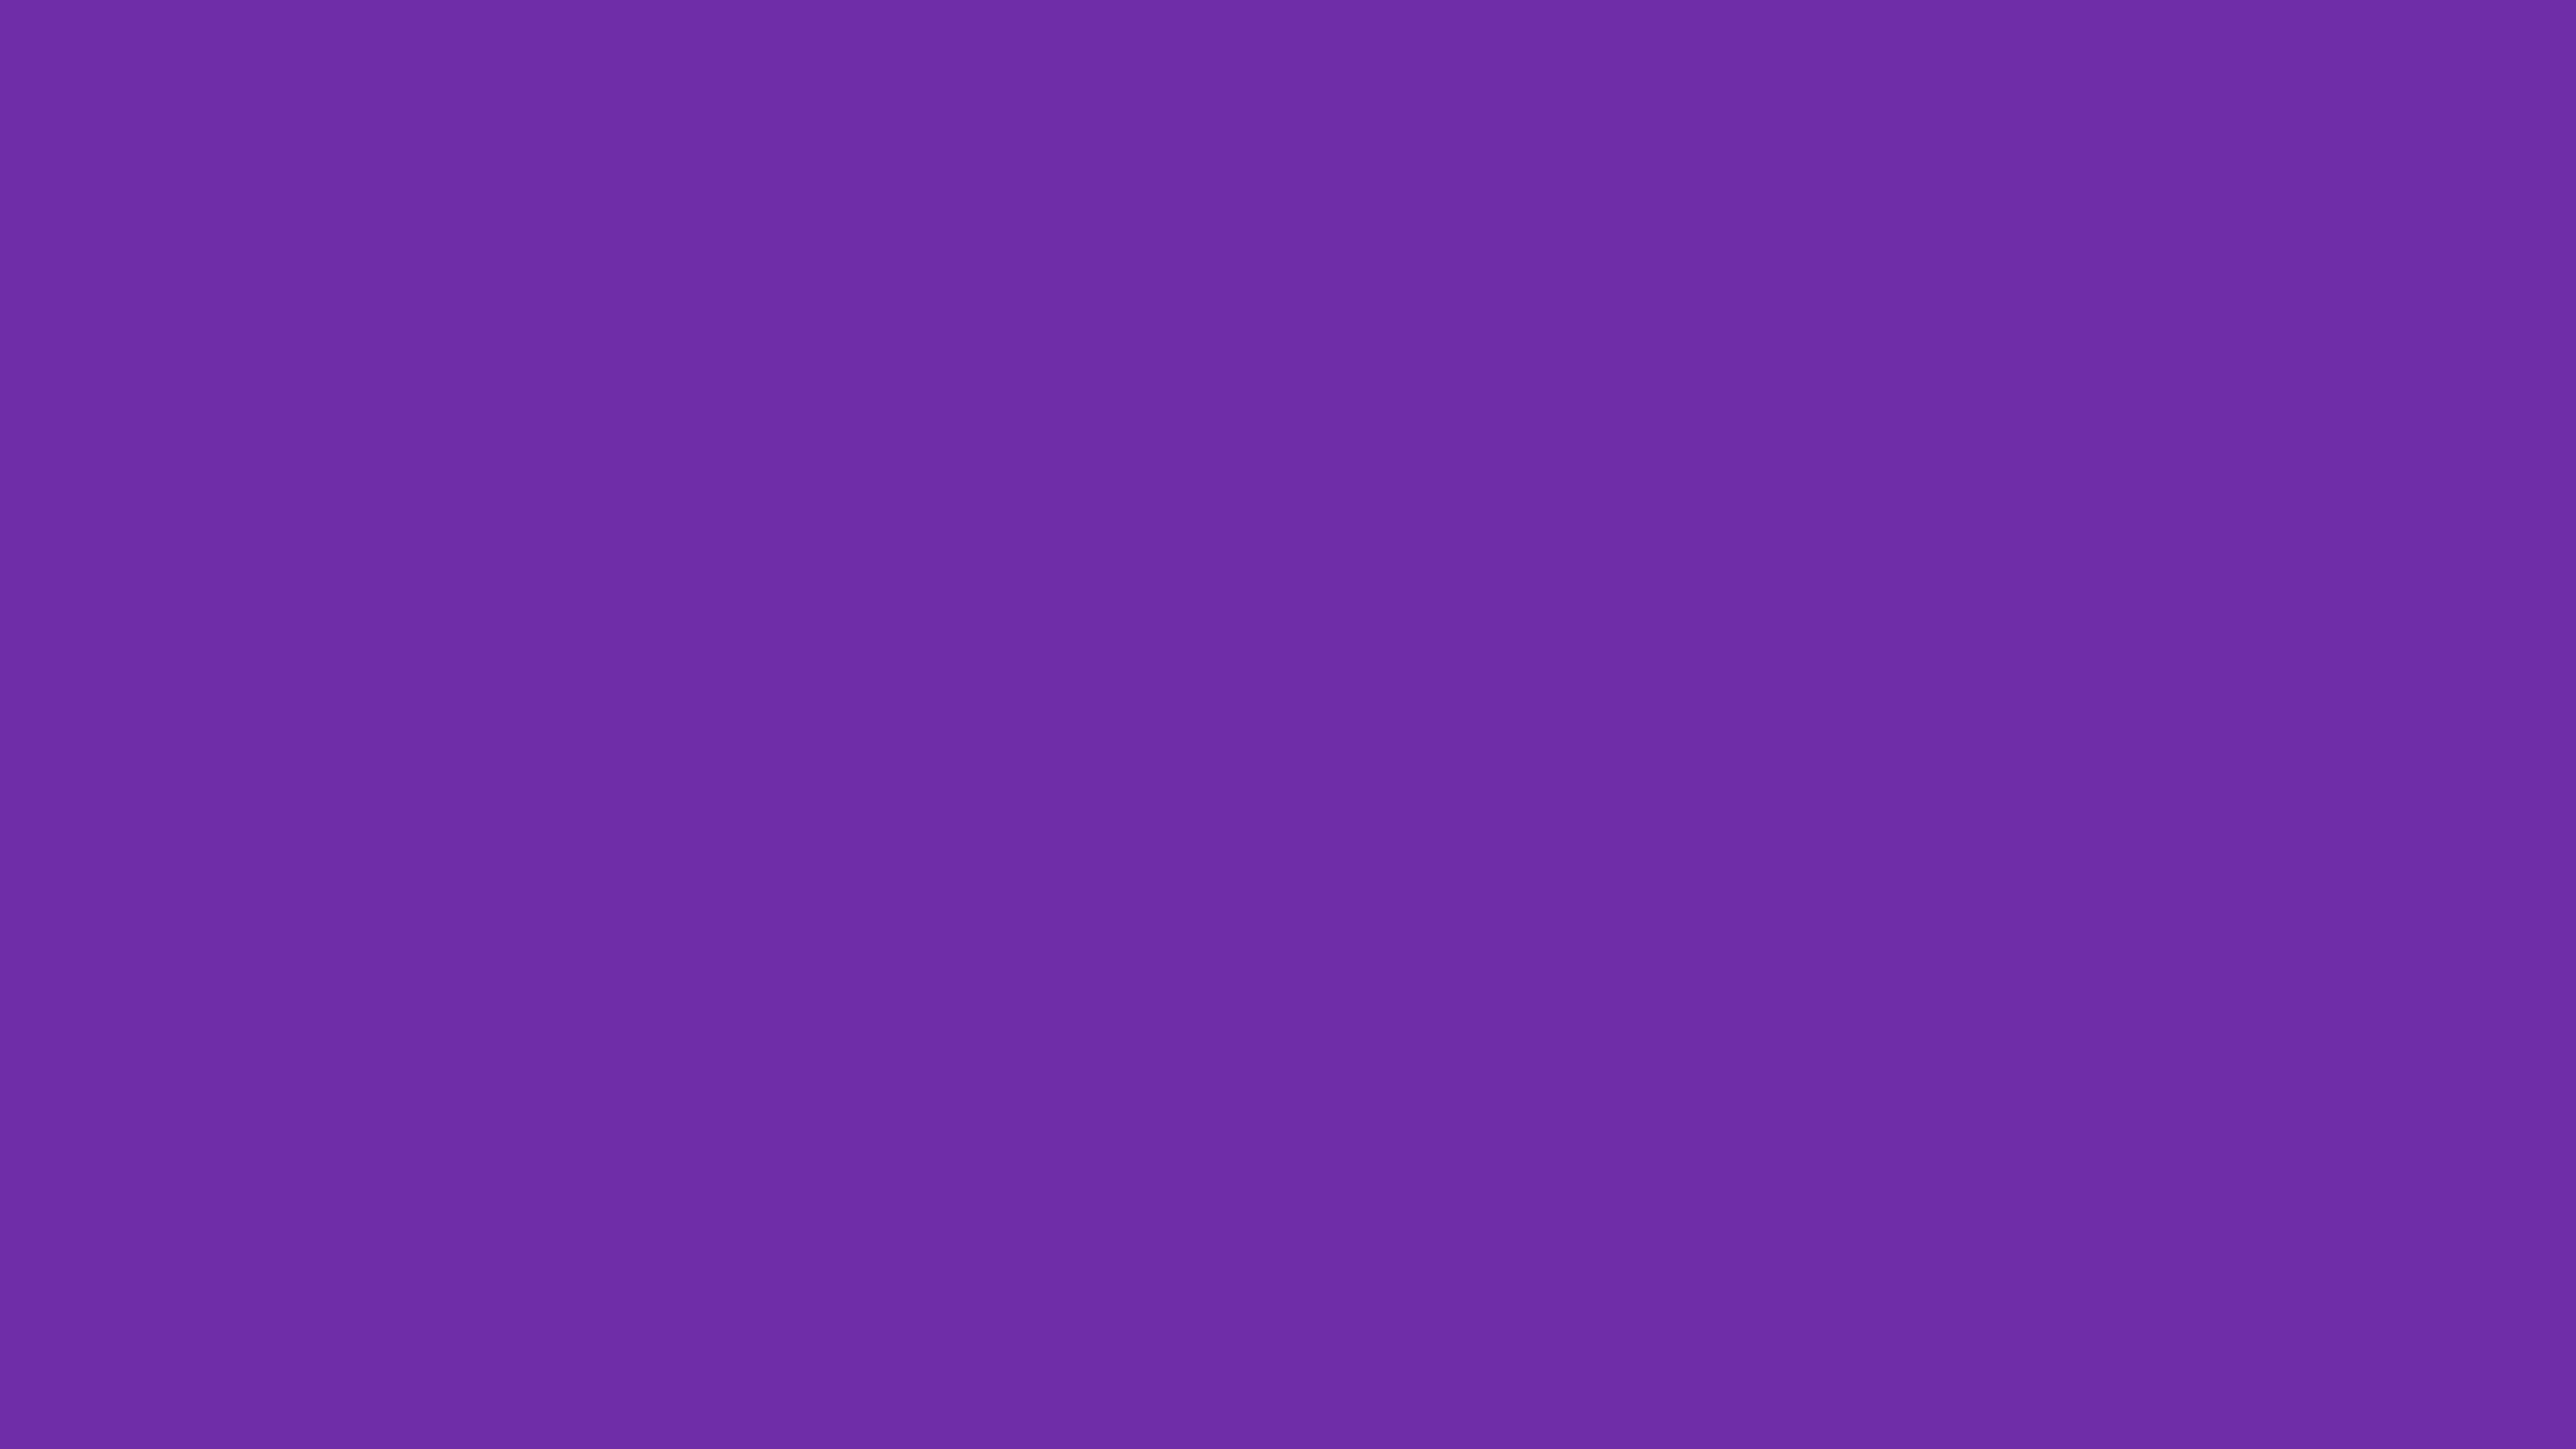 5120x2880 Grape Solid Color Background